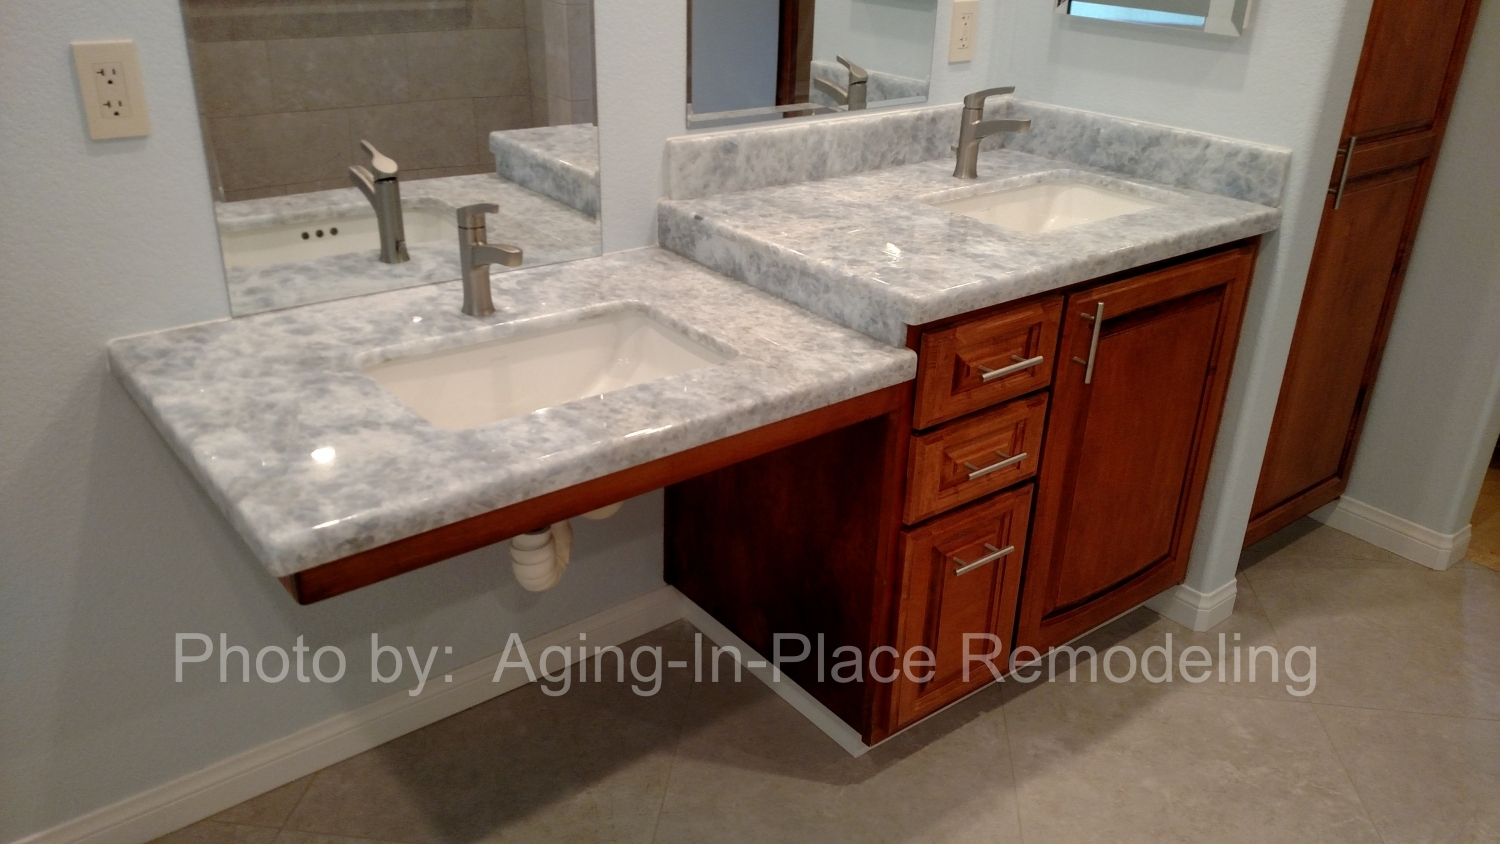 Accessible sinks aging in place remodeling Wheelchair accessible bathroom sinks